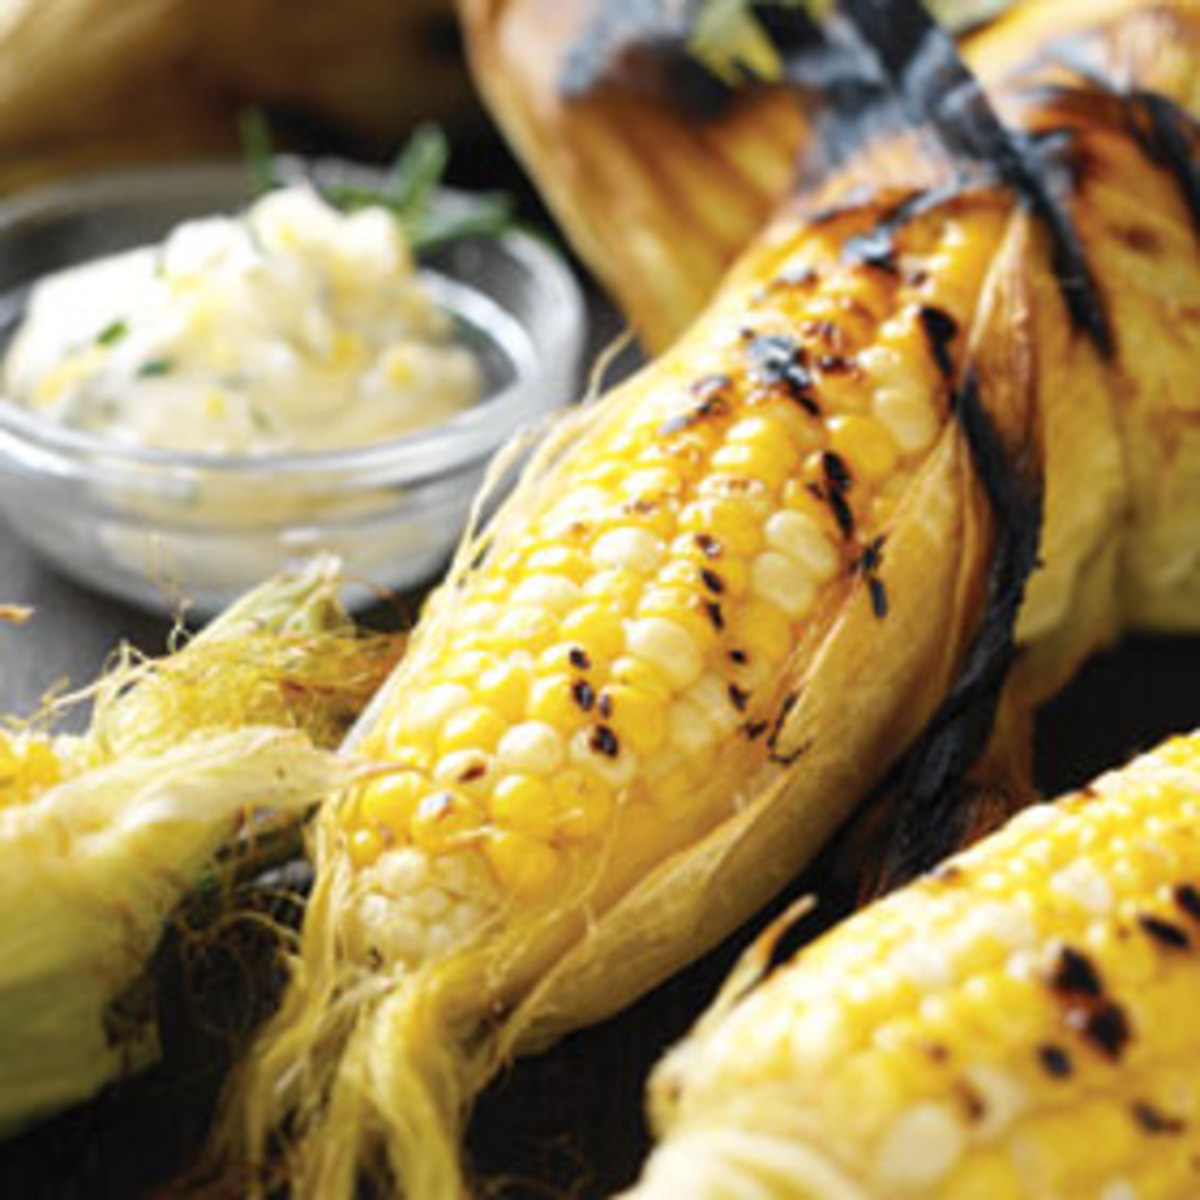 This article will provide four different ways to prepare delicious grilled corn on the cob.